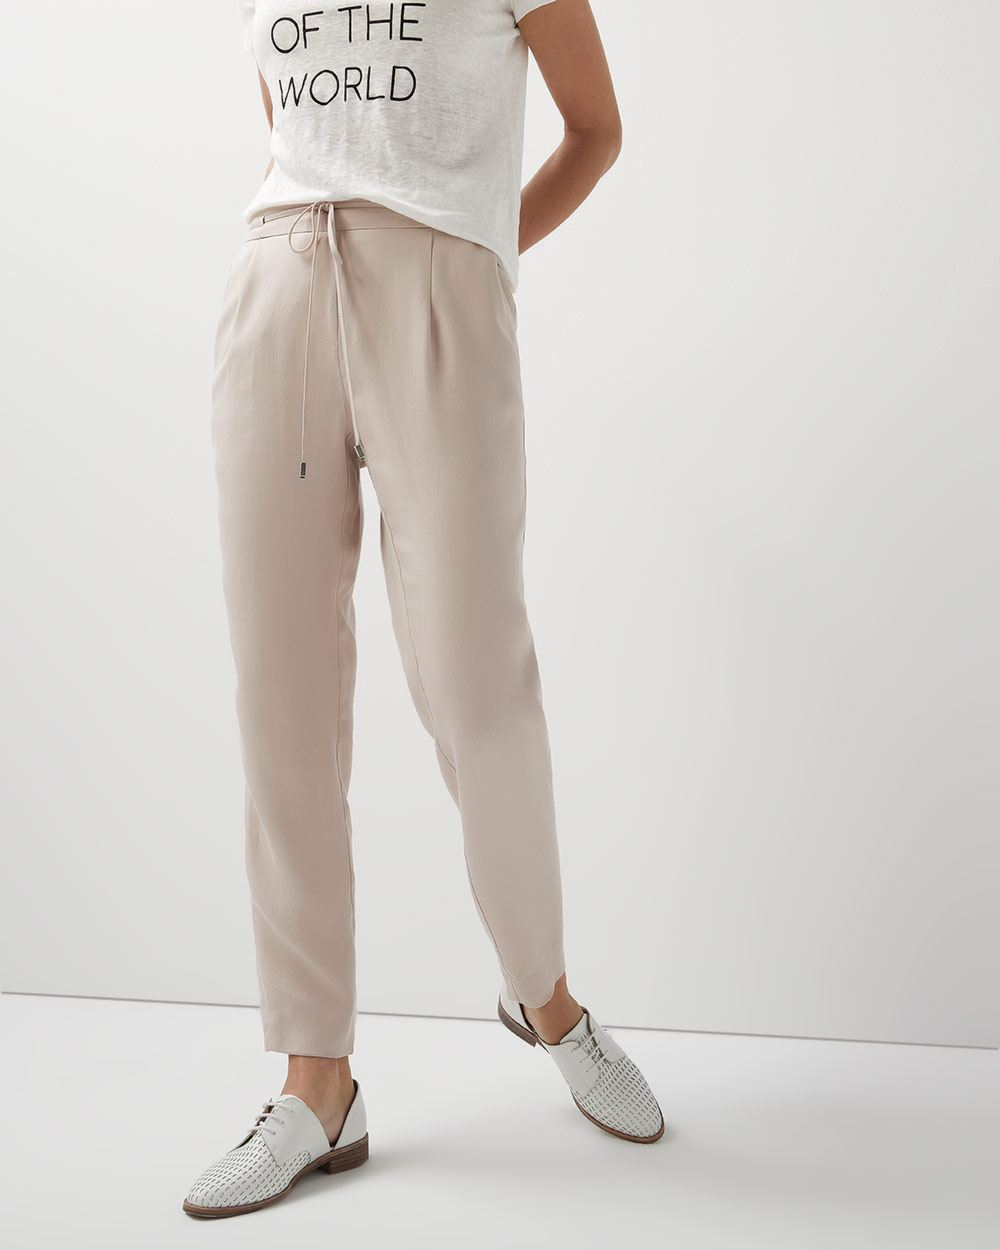 Flowy pant with drawstring